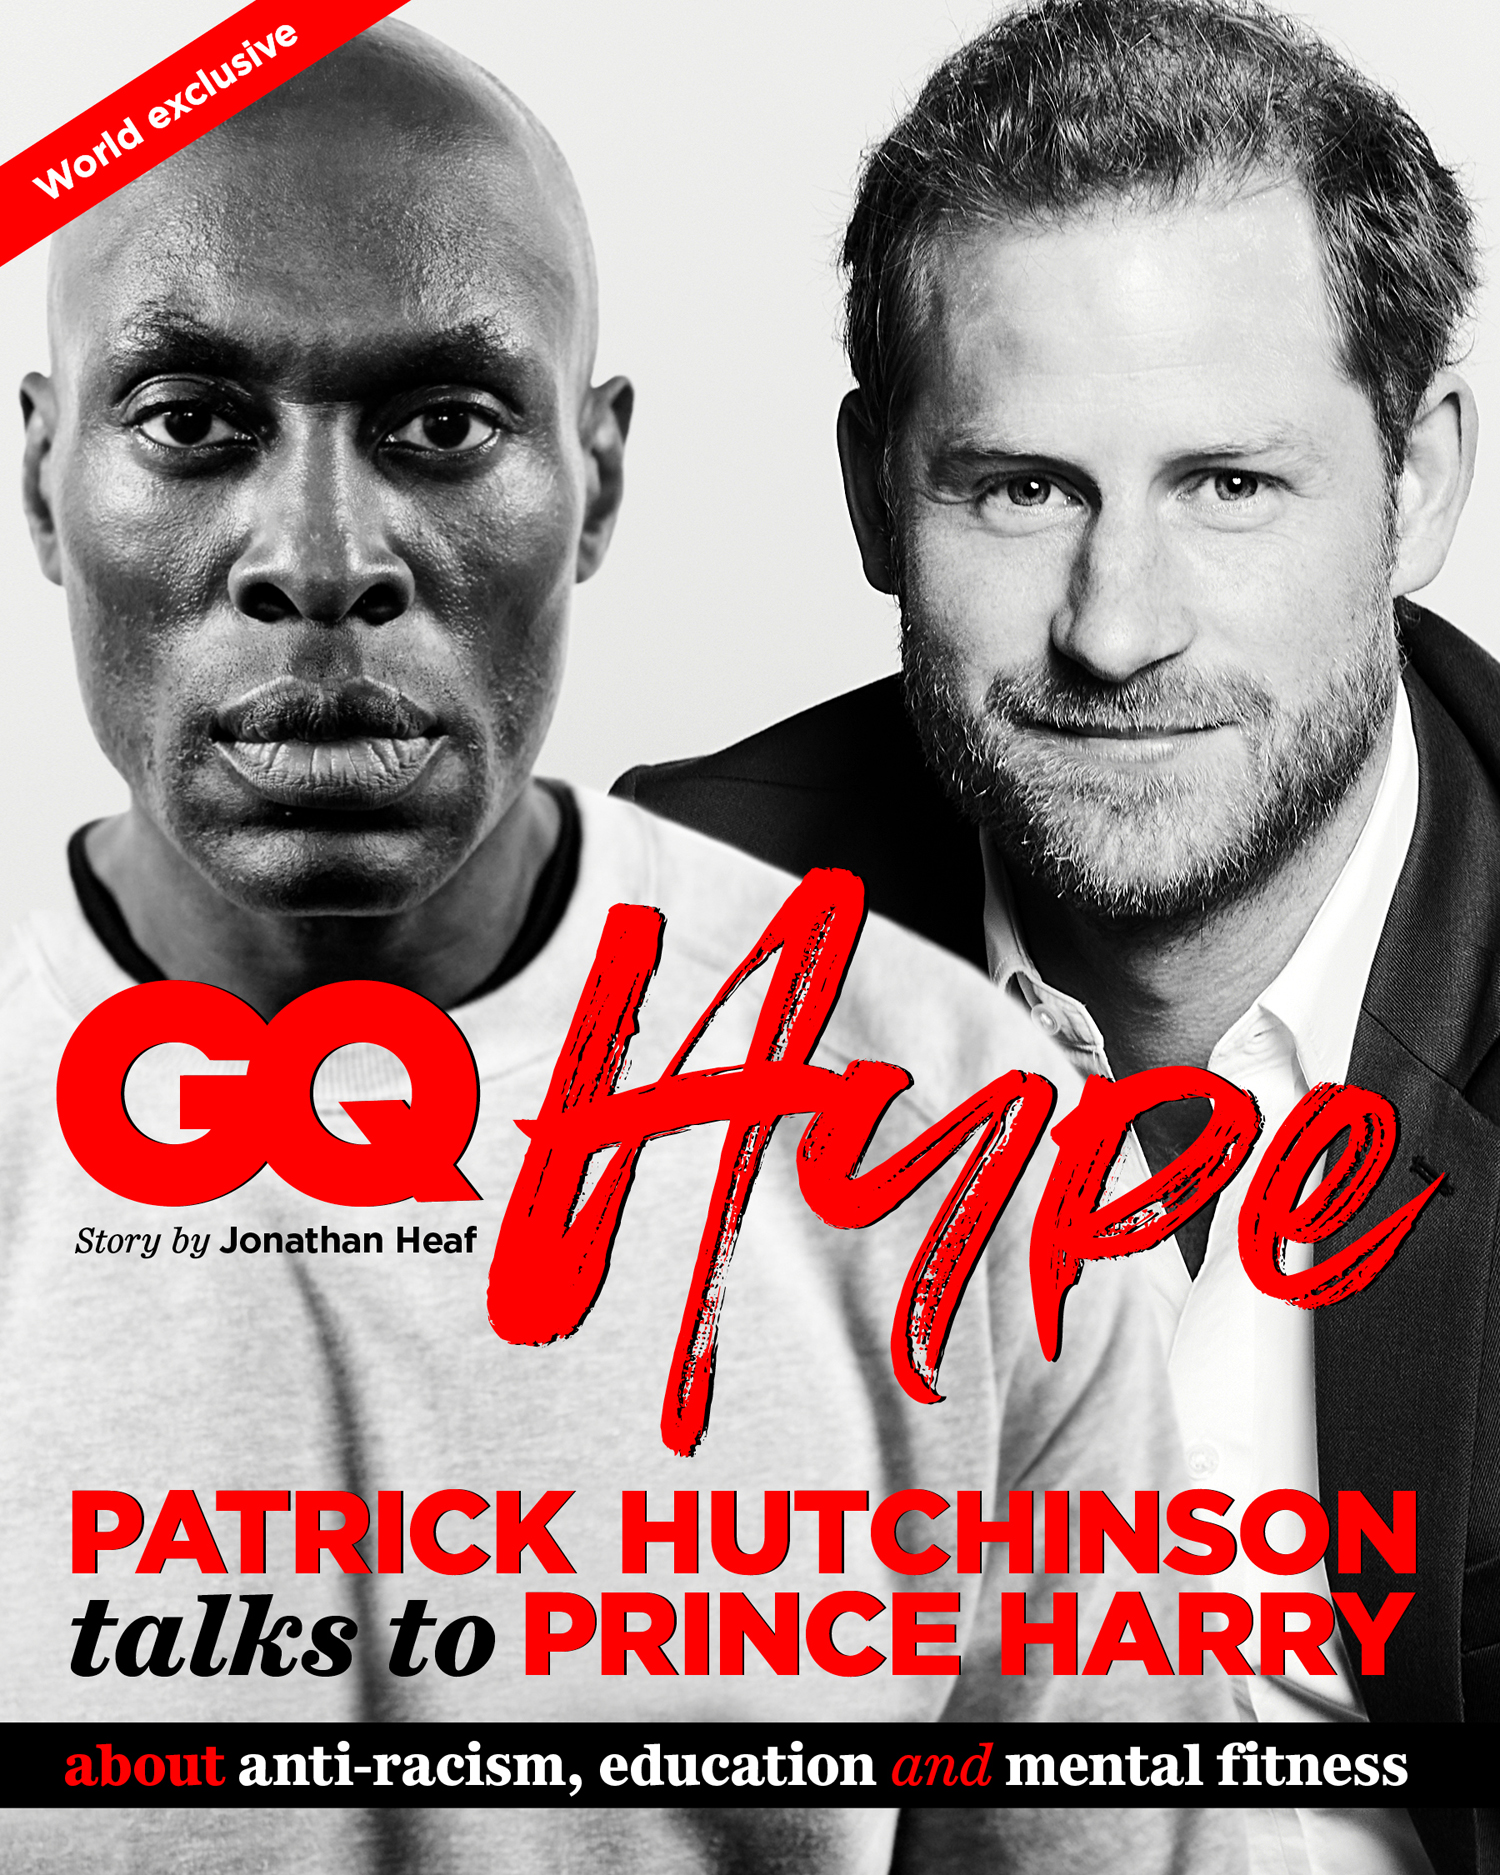 Prince Harry appears on the front cover of British GQ